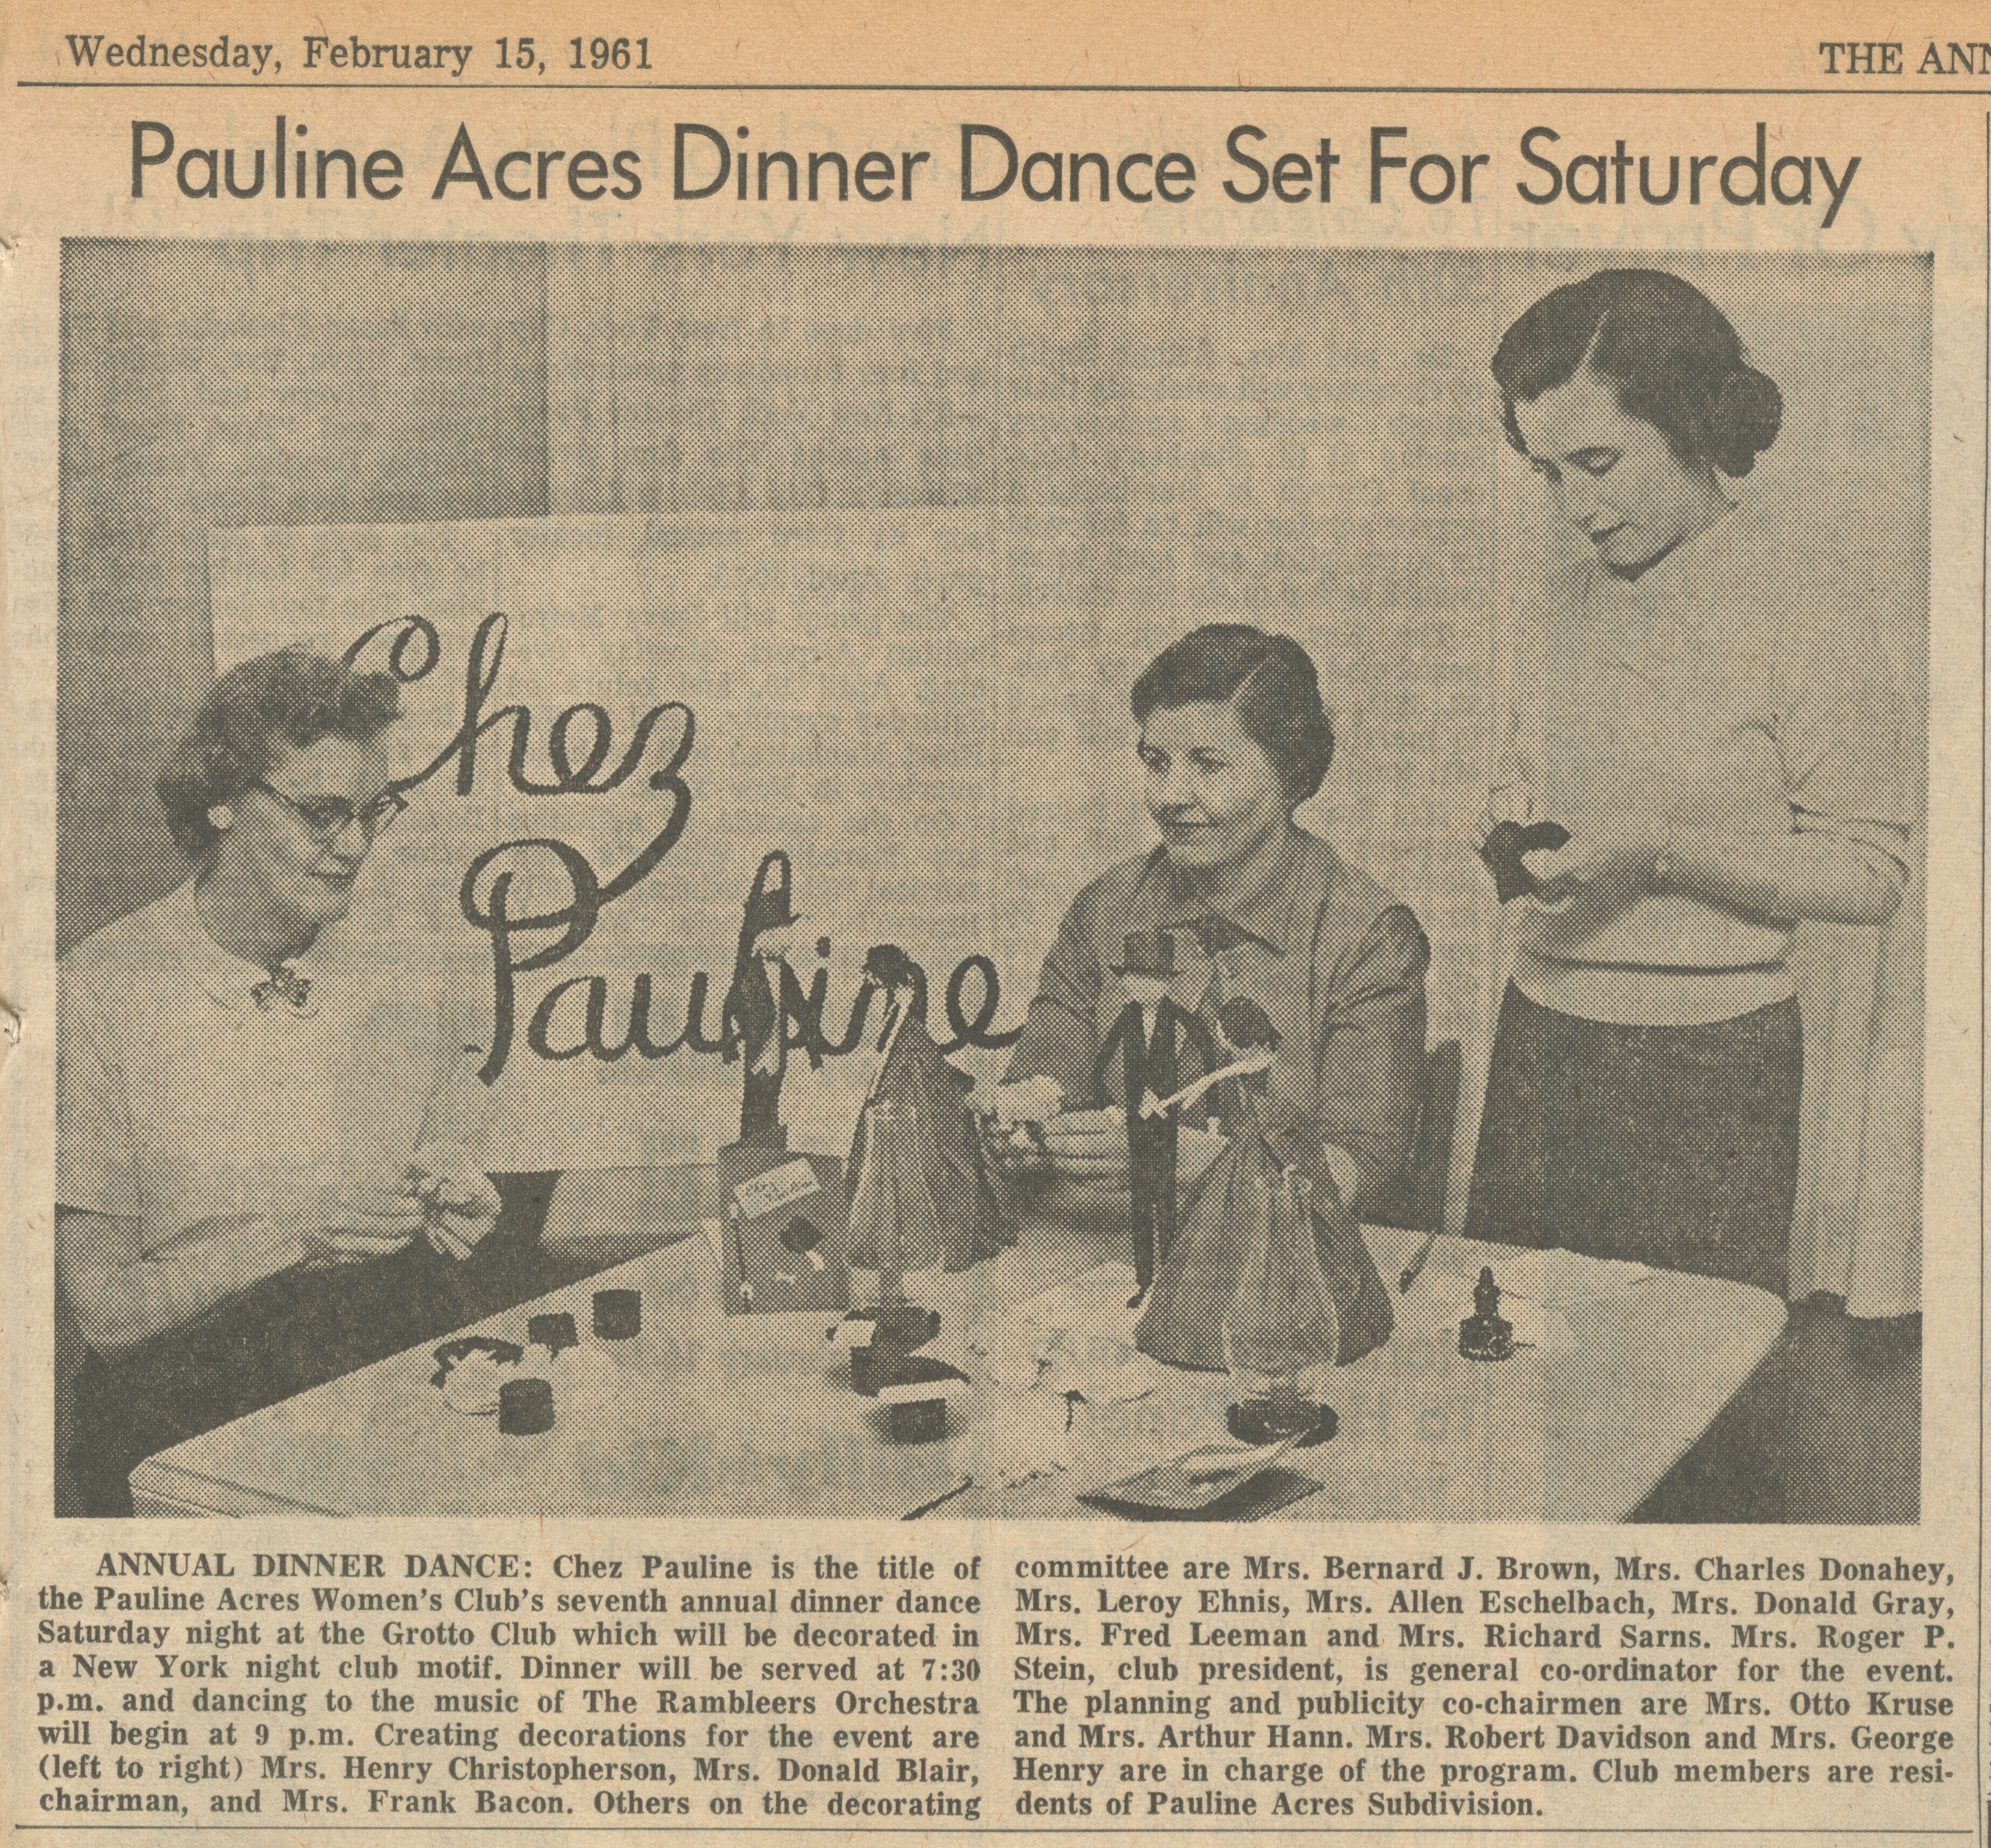 Pauline Acres Dinner Dance Set For Saturday image